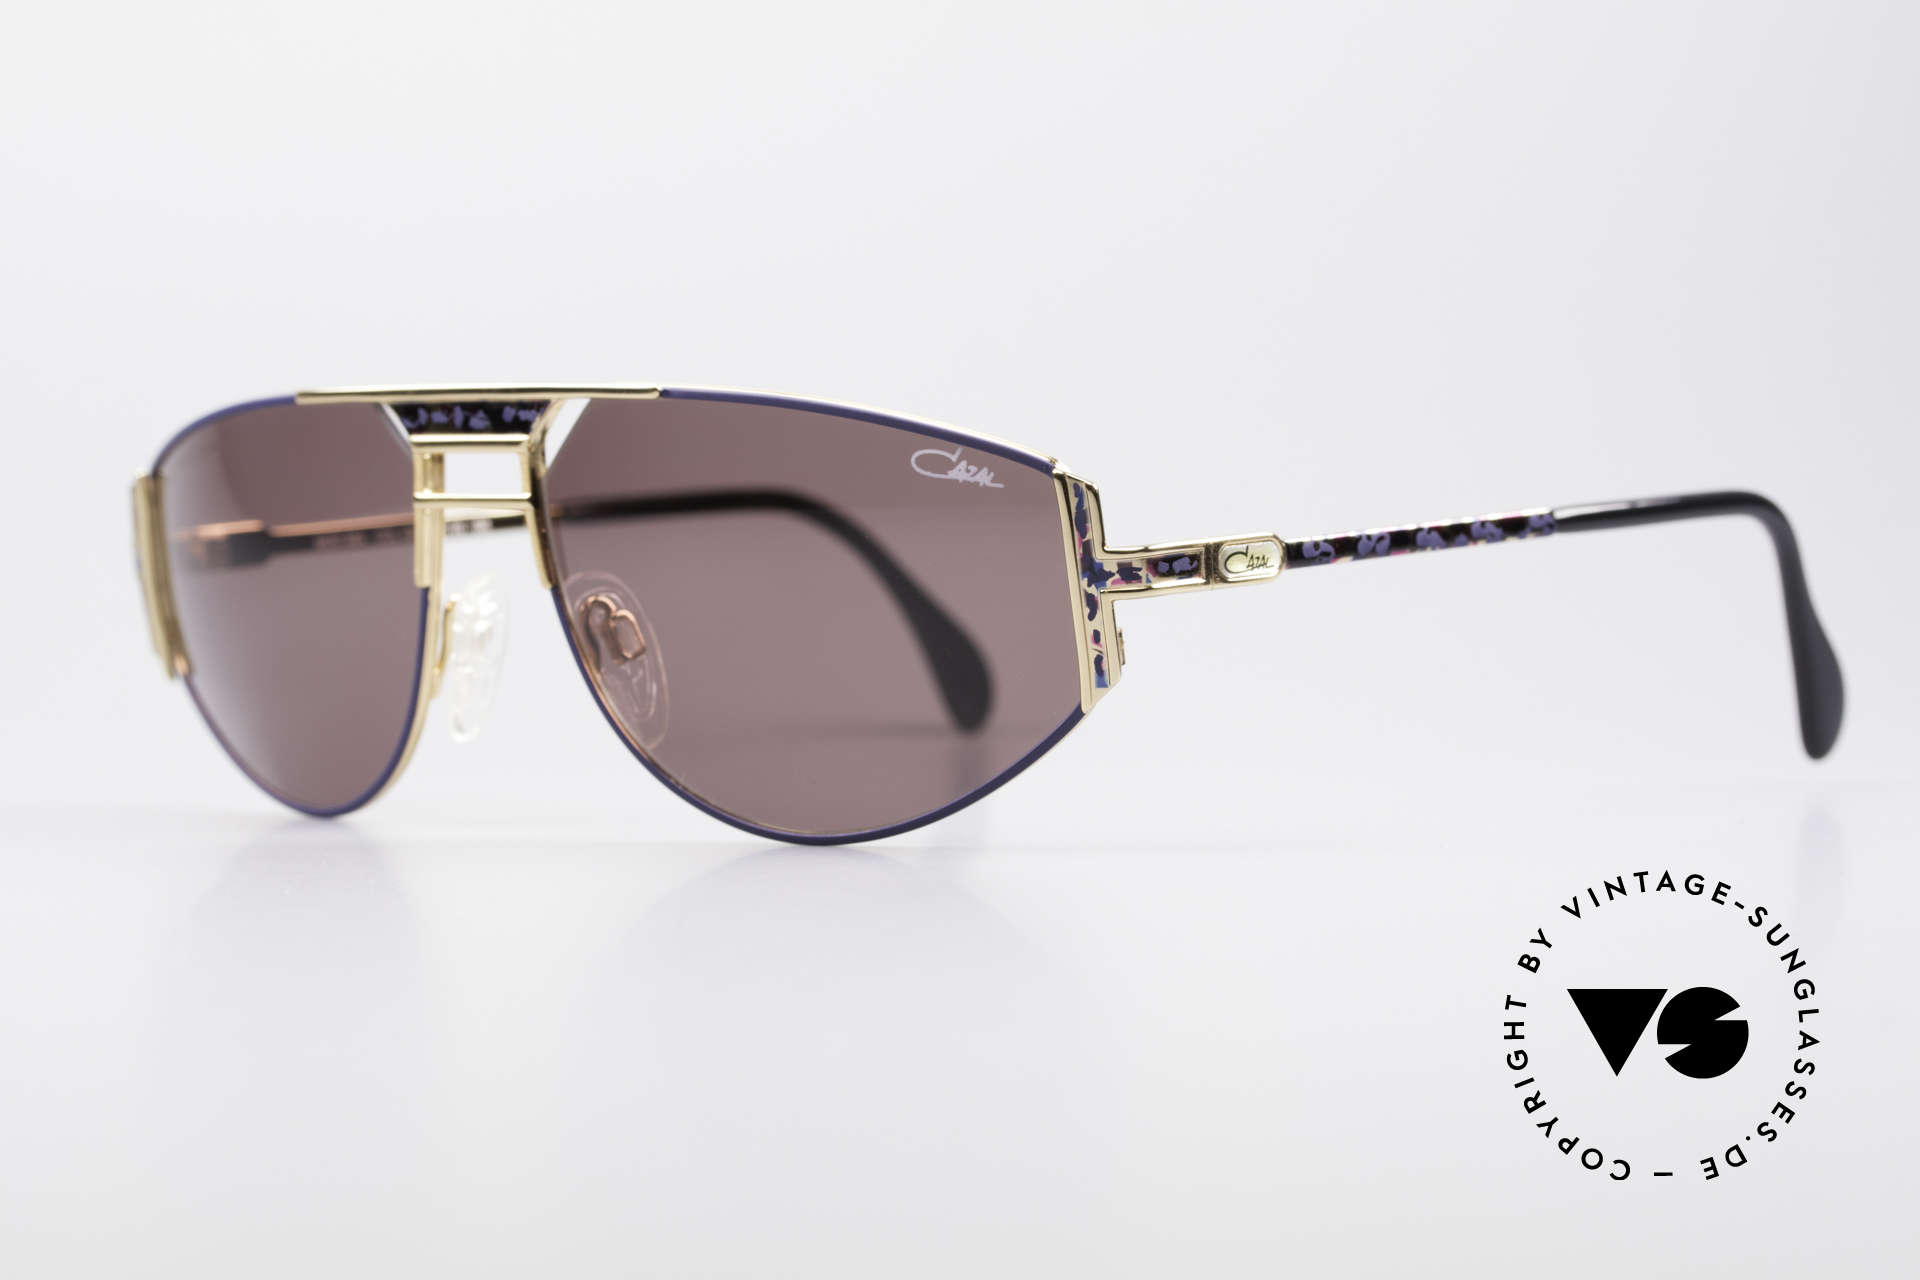 Cazal 964 True Vintage 90s Sunglasses, terrific creation by famous CAri ZALloni (Mr. CAZAL), Made for Men and Women